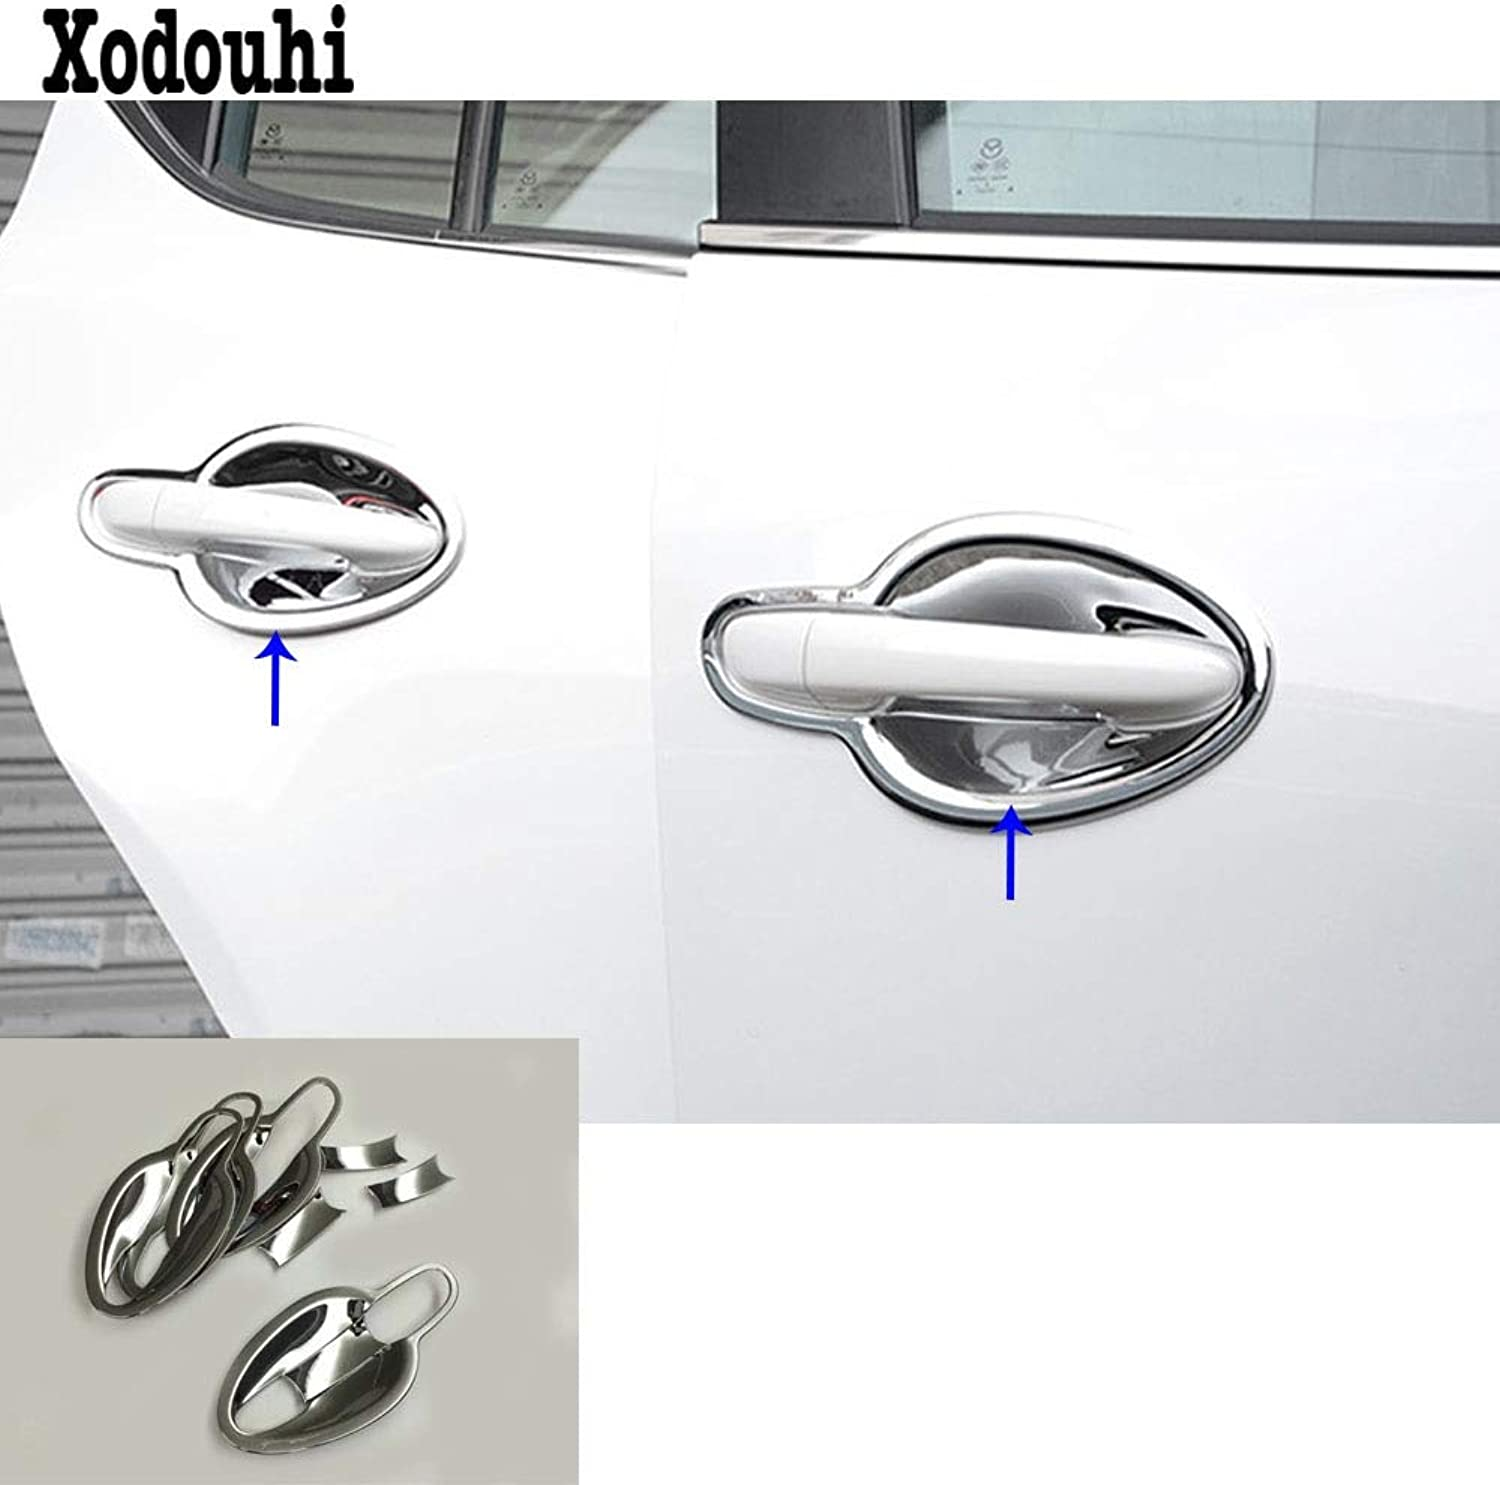 For Mazda CX3 CX3 2017 2018 2019 car Styling Cover Trim ABS Chrome External Door Bowl Stick lamp Frame Moulding 8pcs